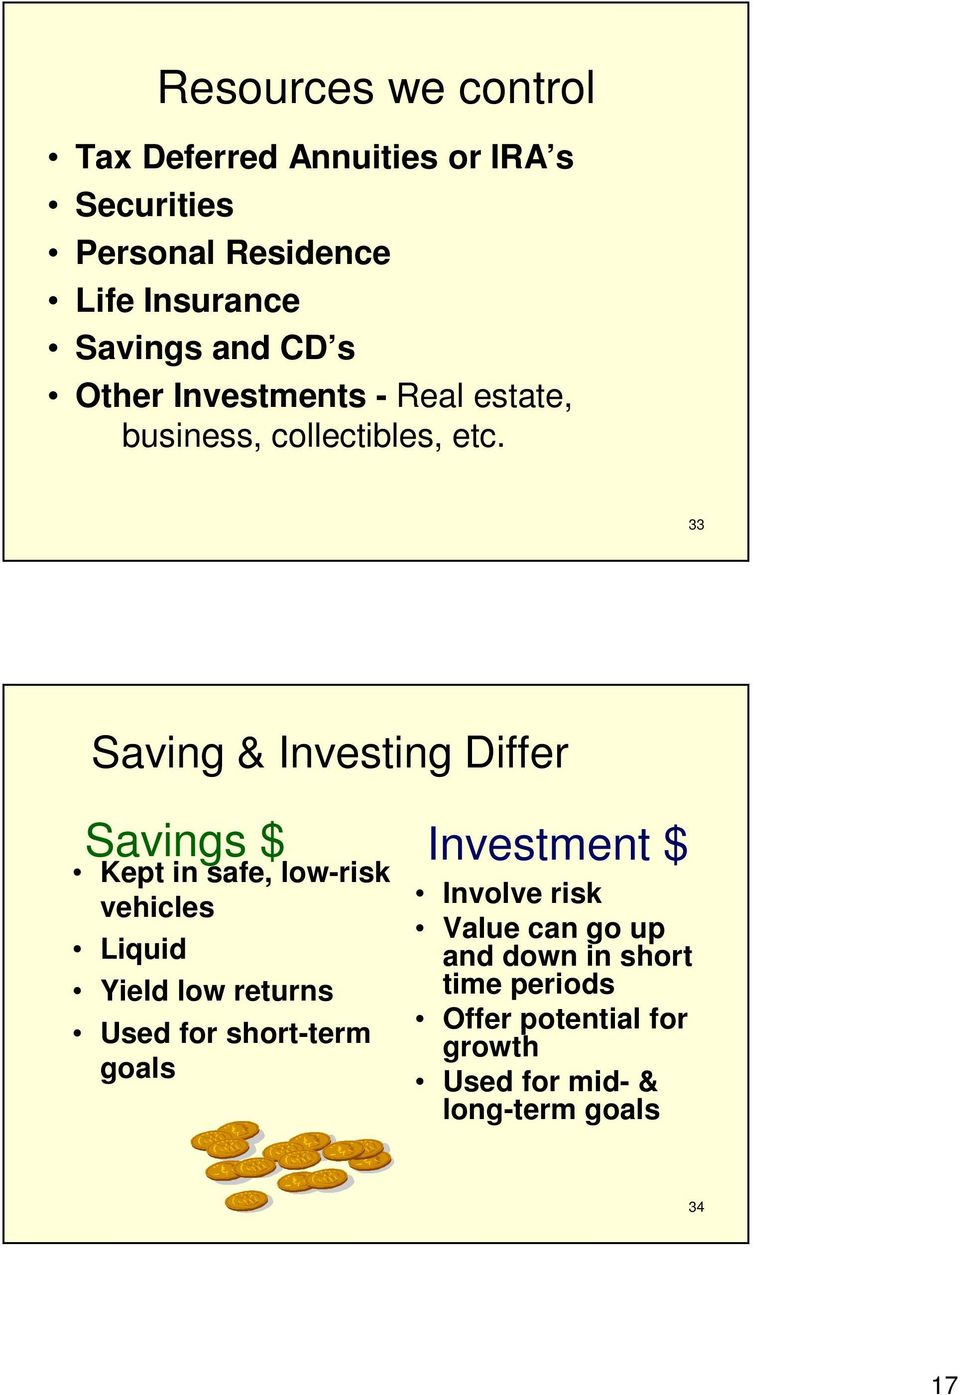 33 Saving & Investing Differ Savings $ Kept in safe, low-risk vehicles Liquid Yield low returns Used for